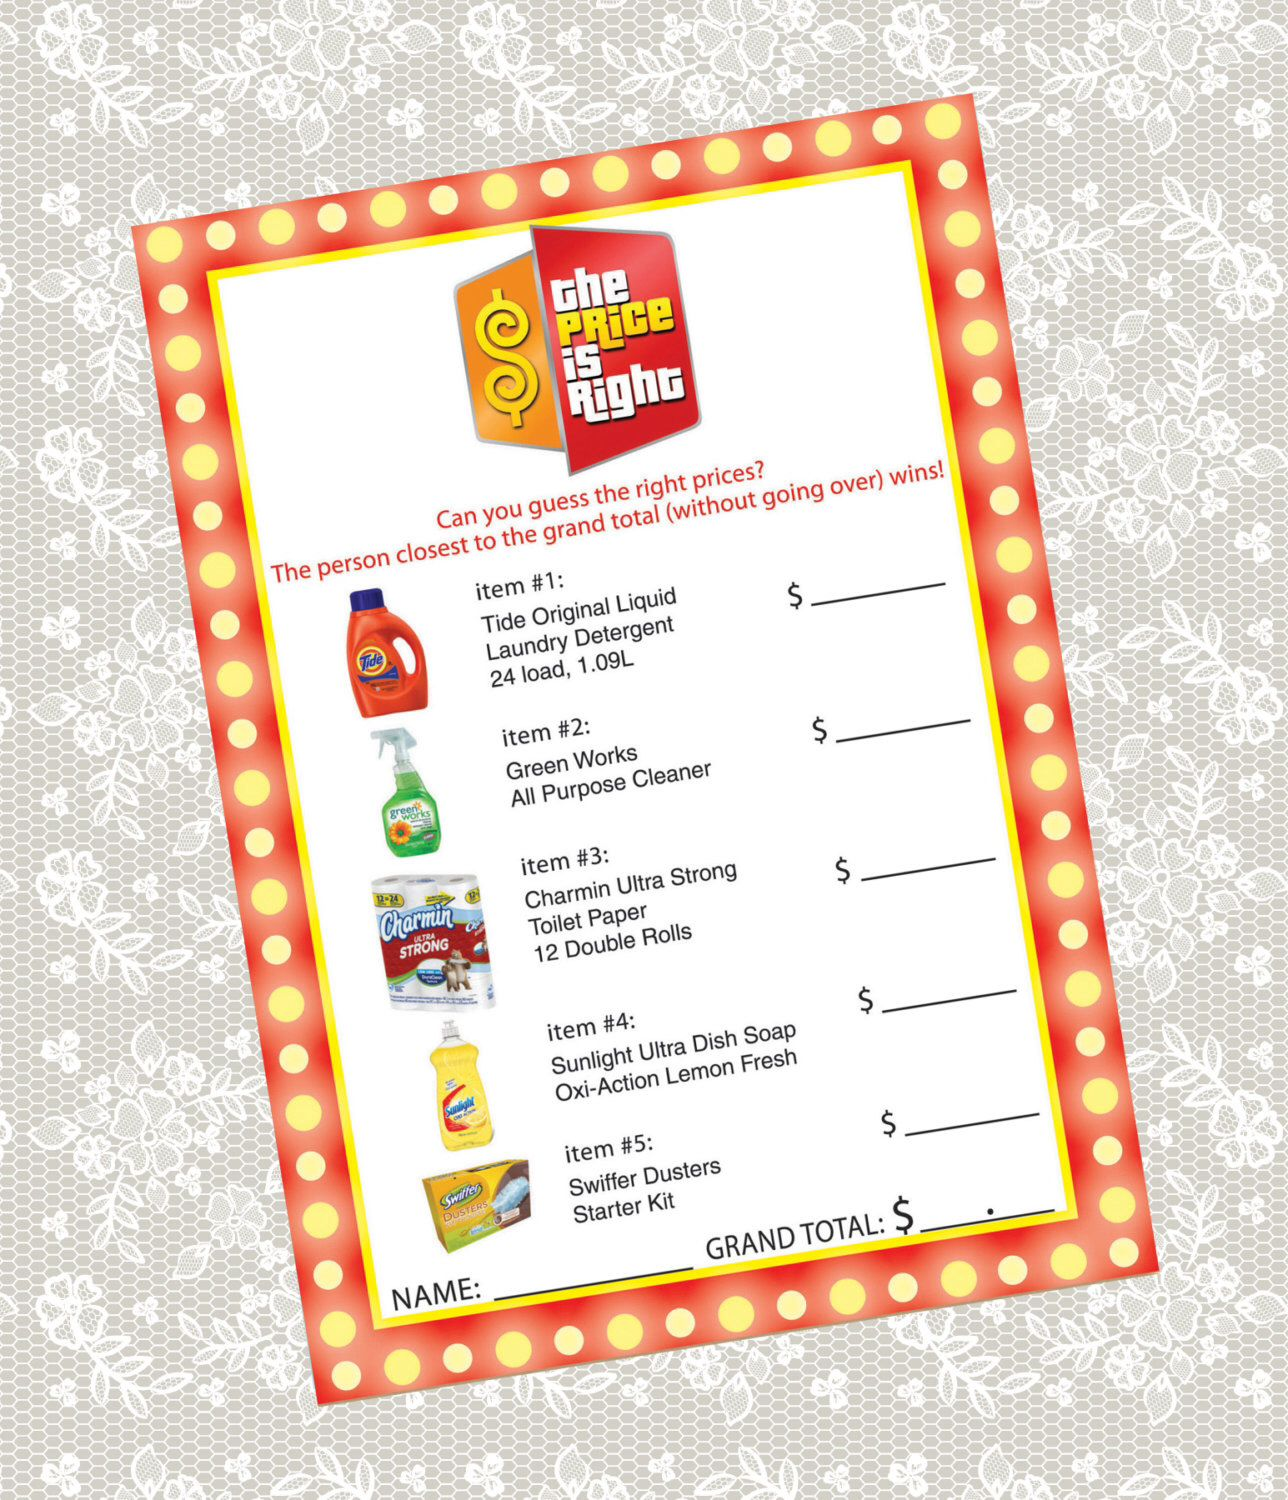 Printable 39 the price is right 39 bridal shower game card by for Housewarming party game ideas